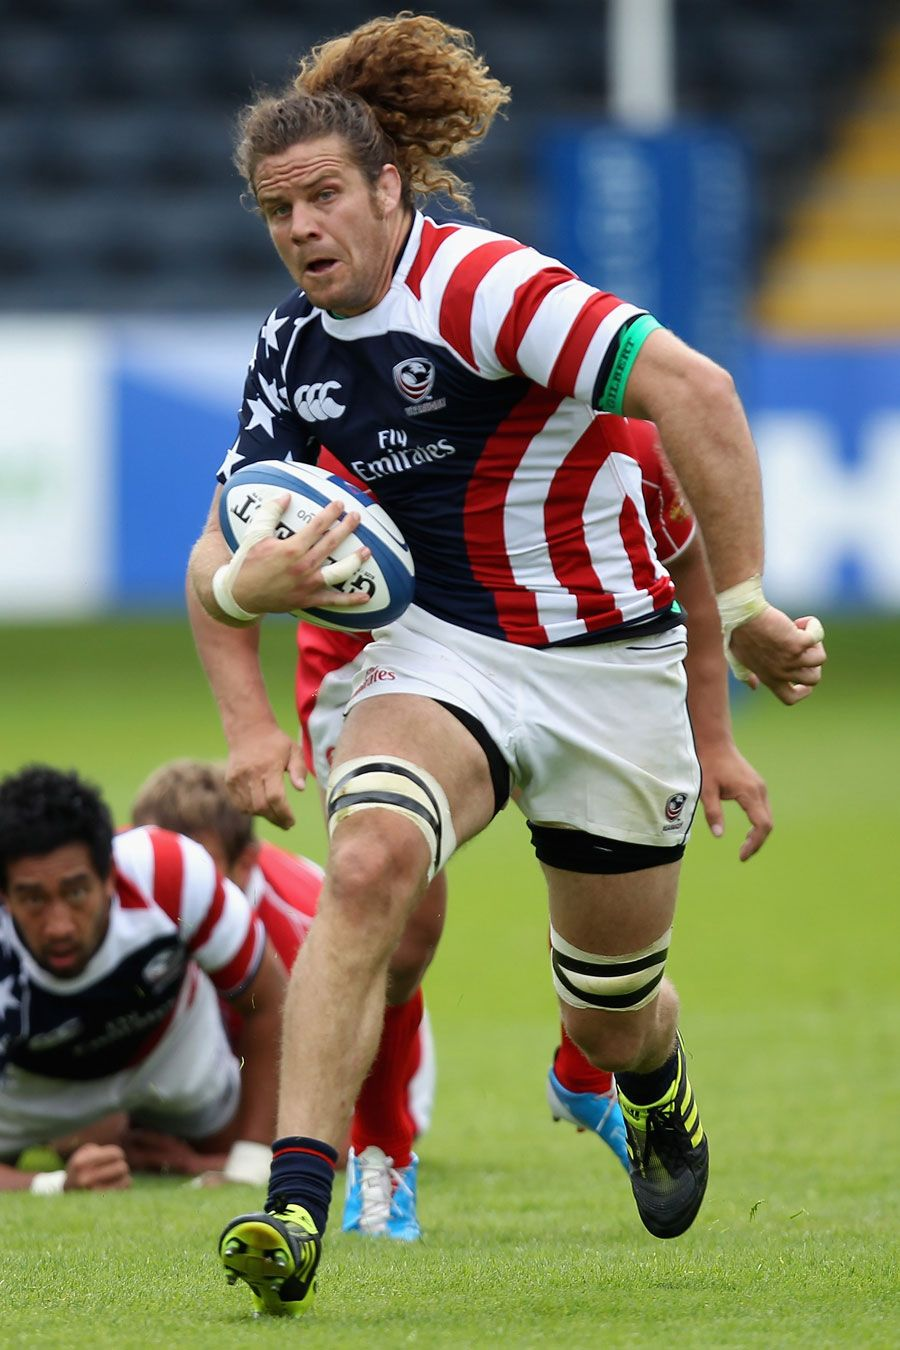 Pin about Rugby gear on USA Rugby